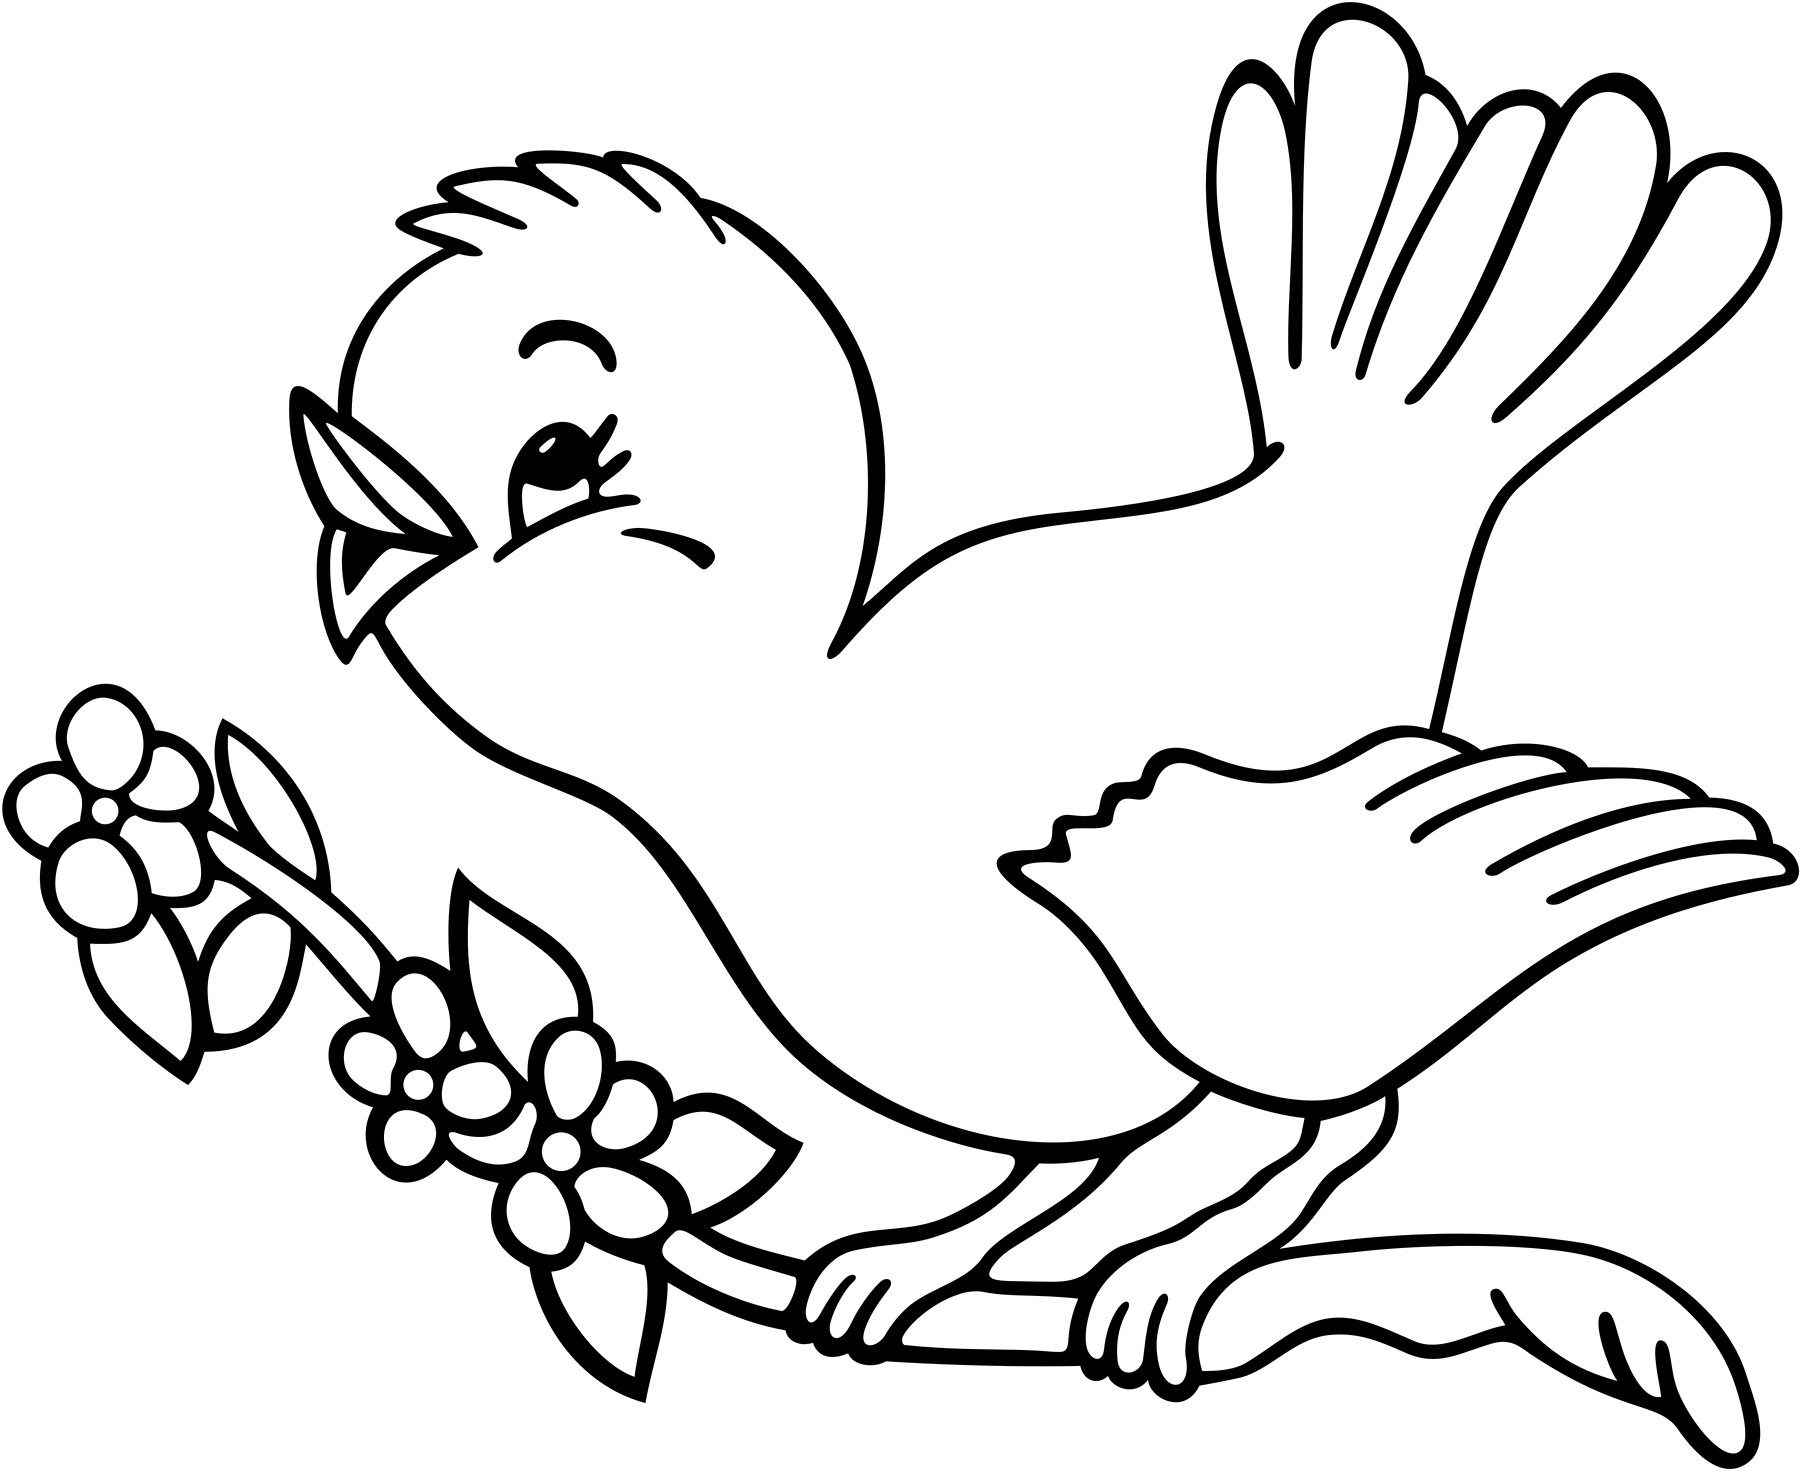 bird coloring images cute tweety coloring page cartoon coloring pages tweety bird images coloring